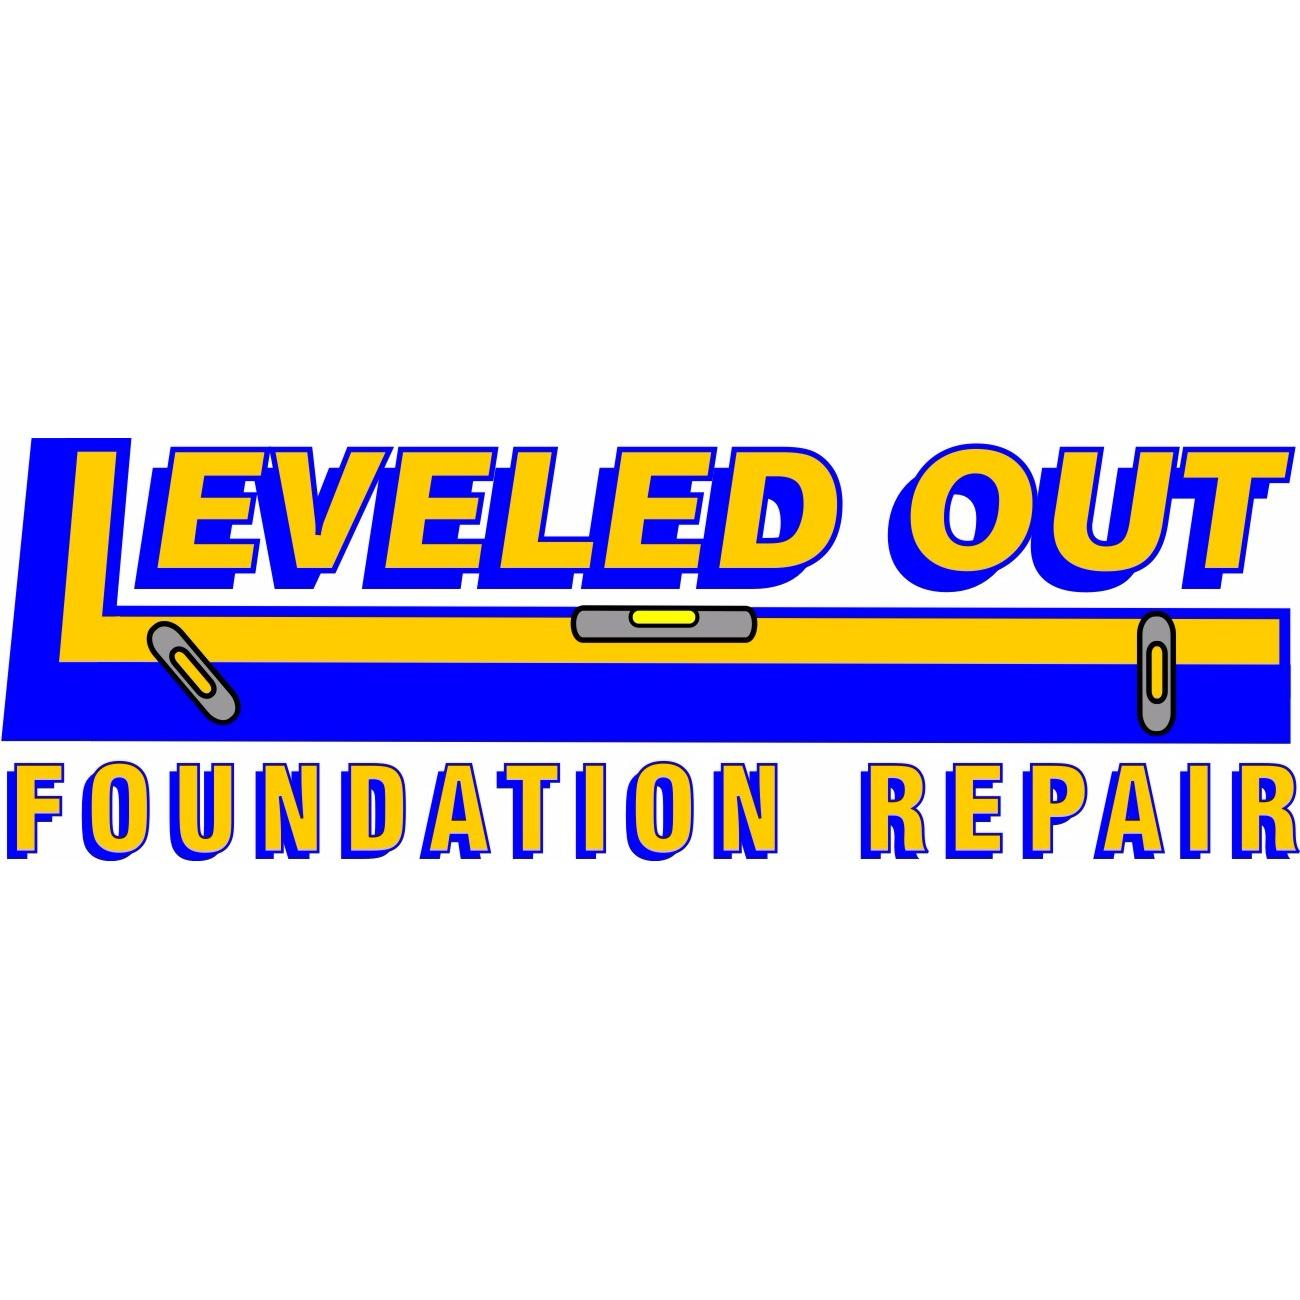 Leveled Out Foundation Repair